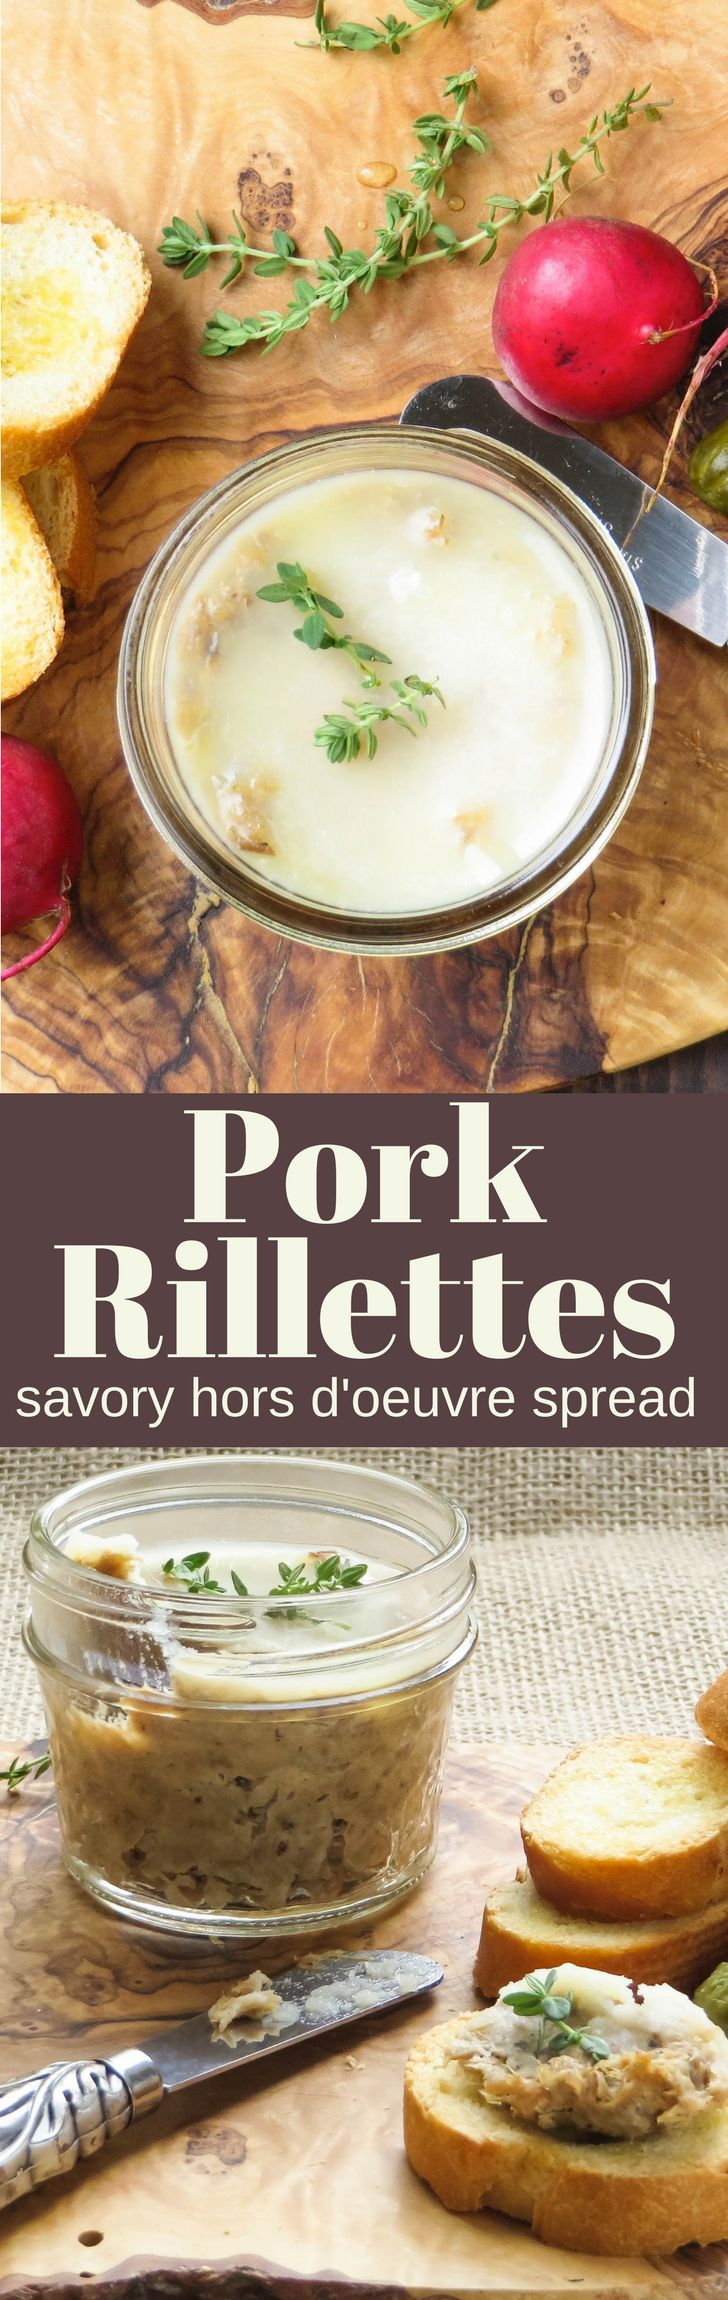 This easy pork pate recipe is a great holiday appetizer and makes enough for a crowd. Perfect for gifting with a sleeve of crackers and bottle of wine. #pate #spread #appetizer #horsdoeuvres #foodgift #hostessgift #pork #cognac #porkshoulder #braisedpork #homemadedip #dips #pottedmeat #rillettes #porkrillettes